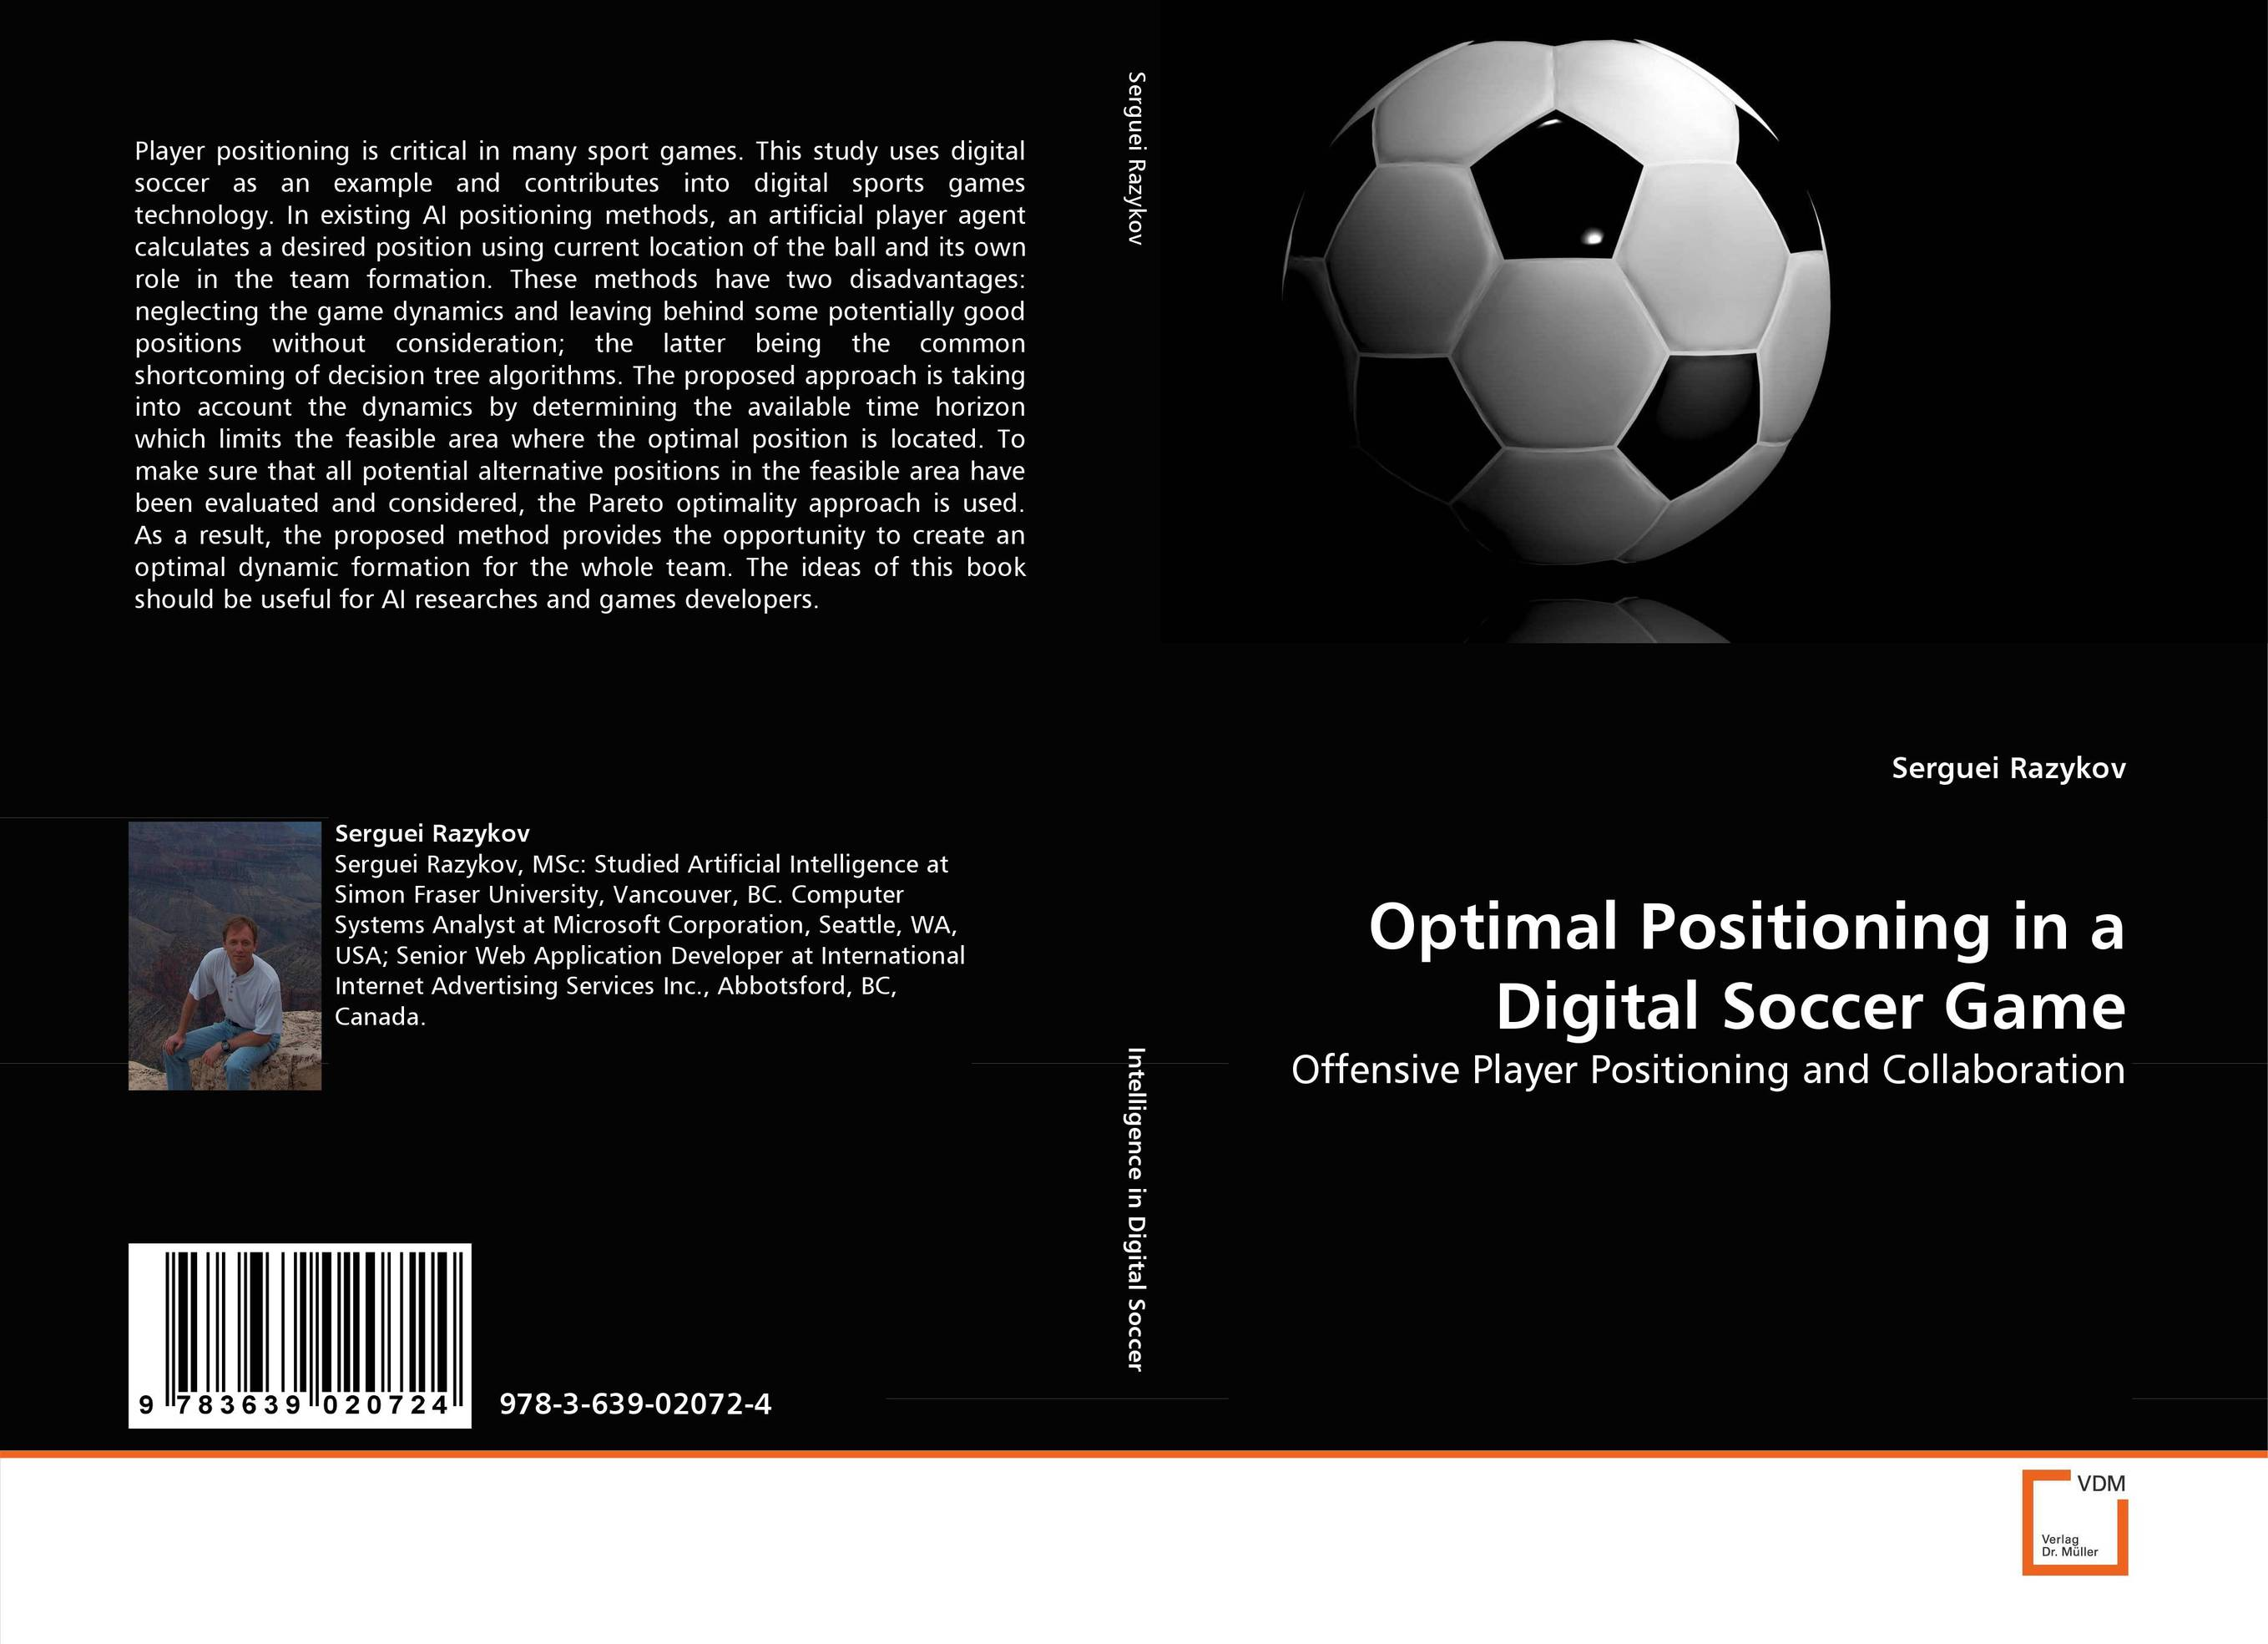 Optimal Positioning in a Digital Soccer Game